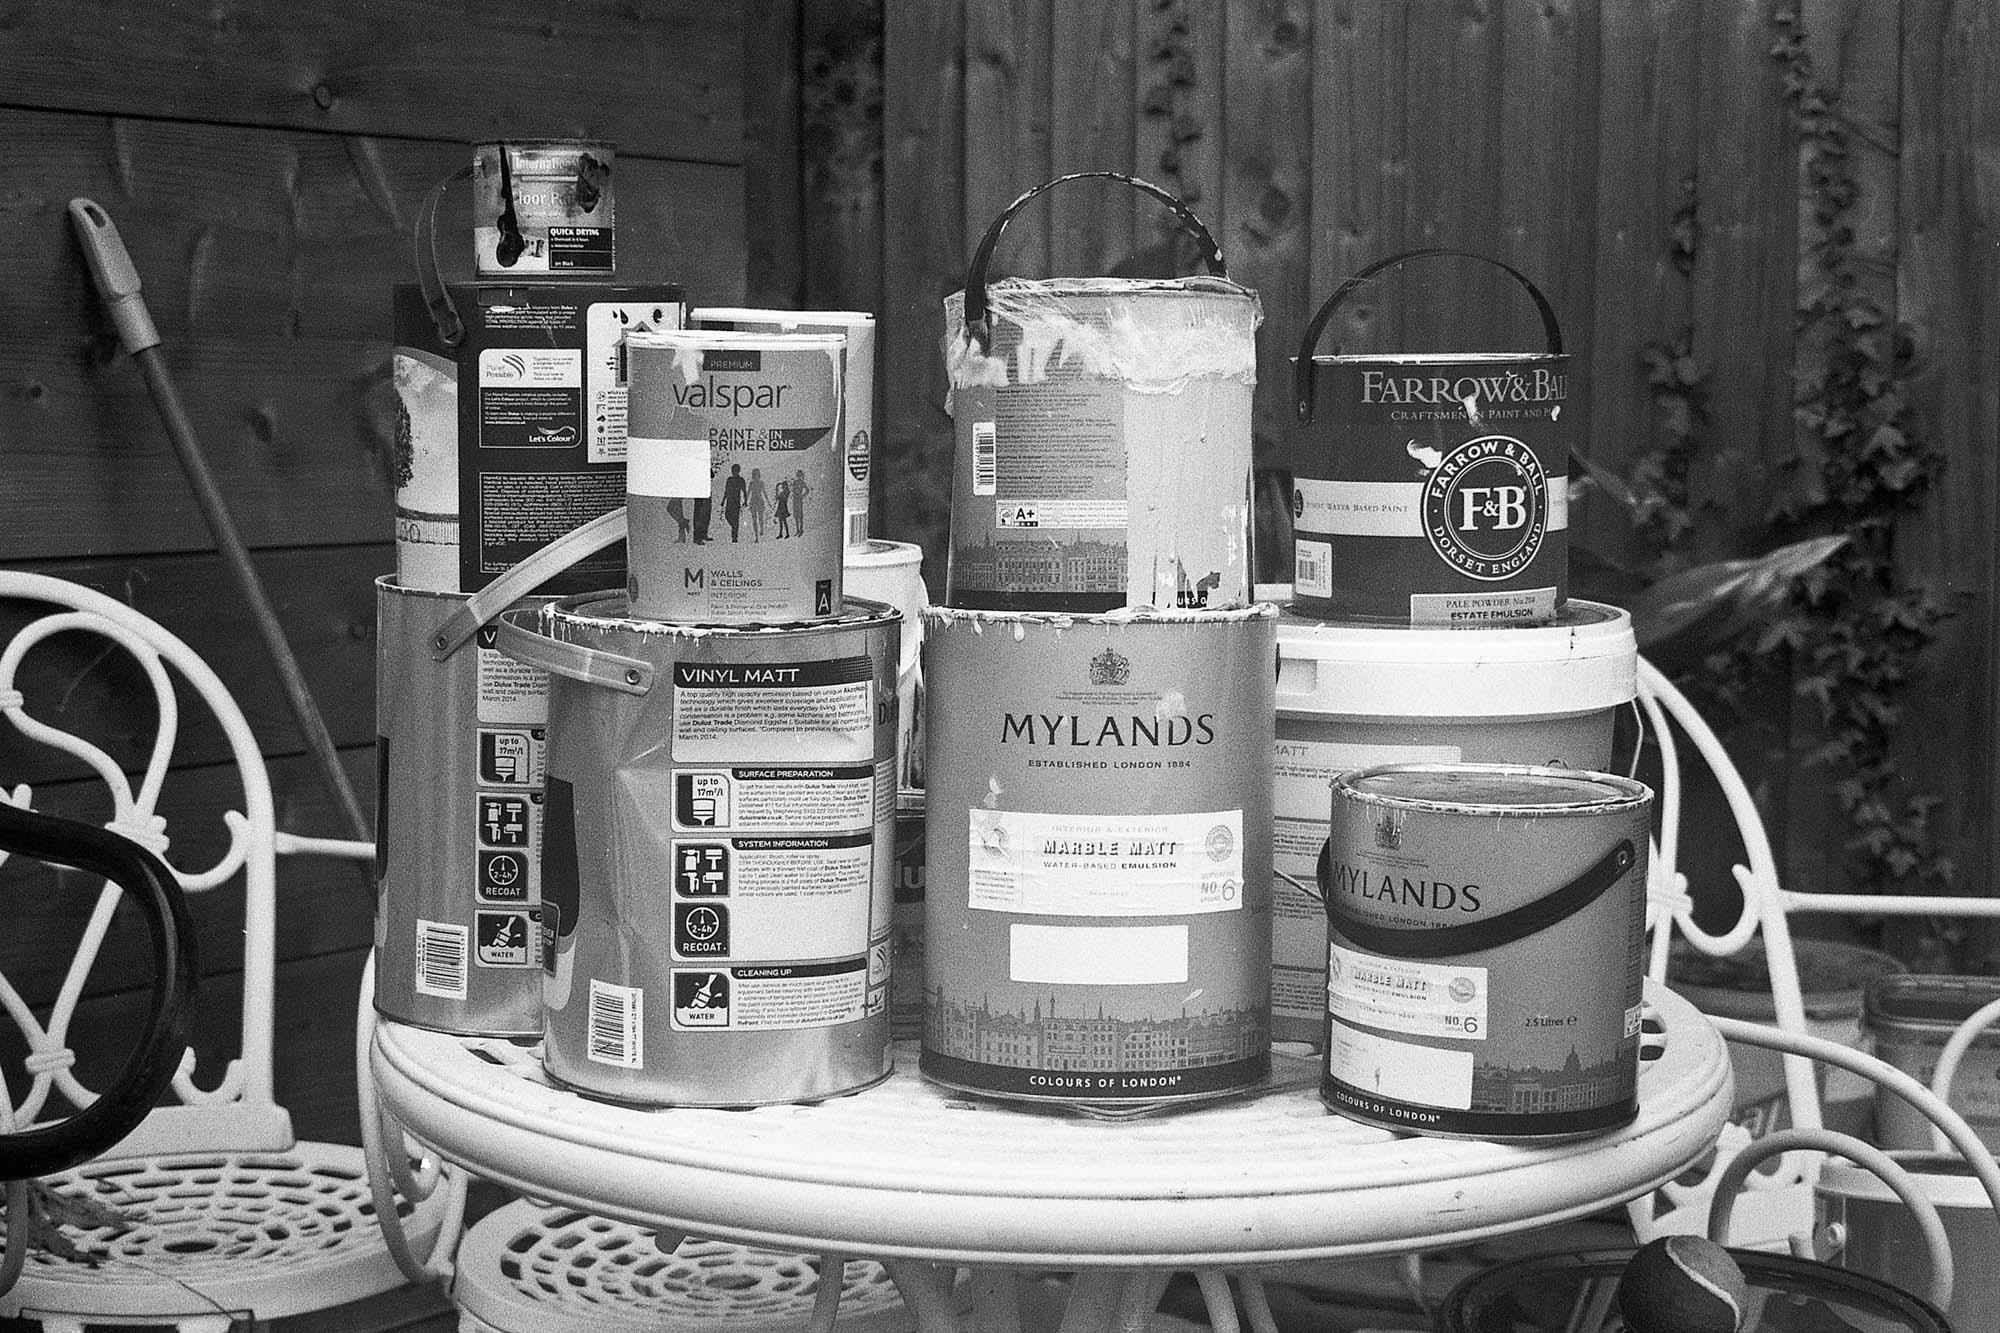 Contax TVS III - Old paint cans make a boring photo but a good sharpness test